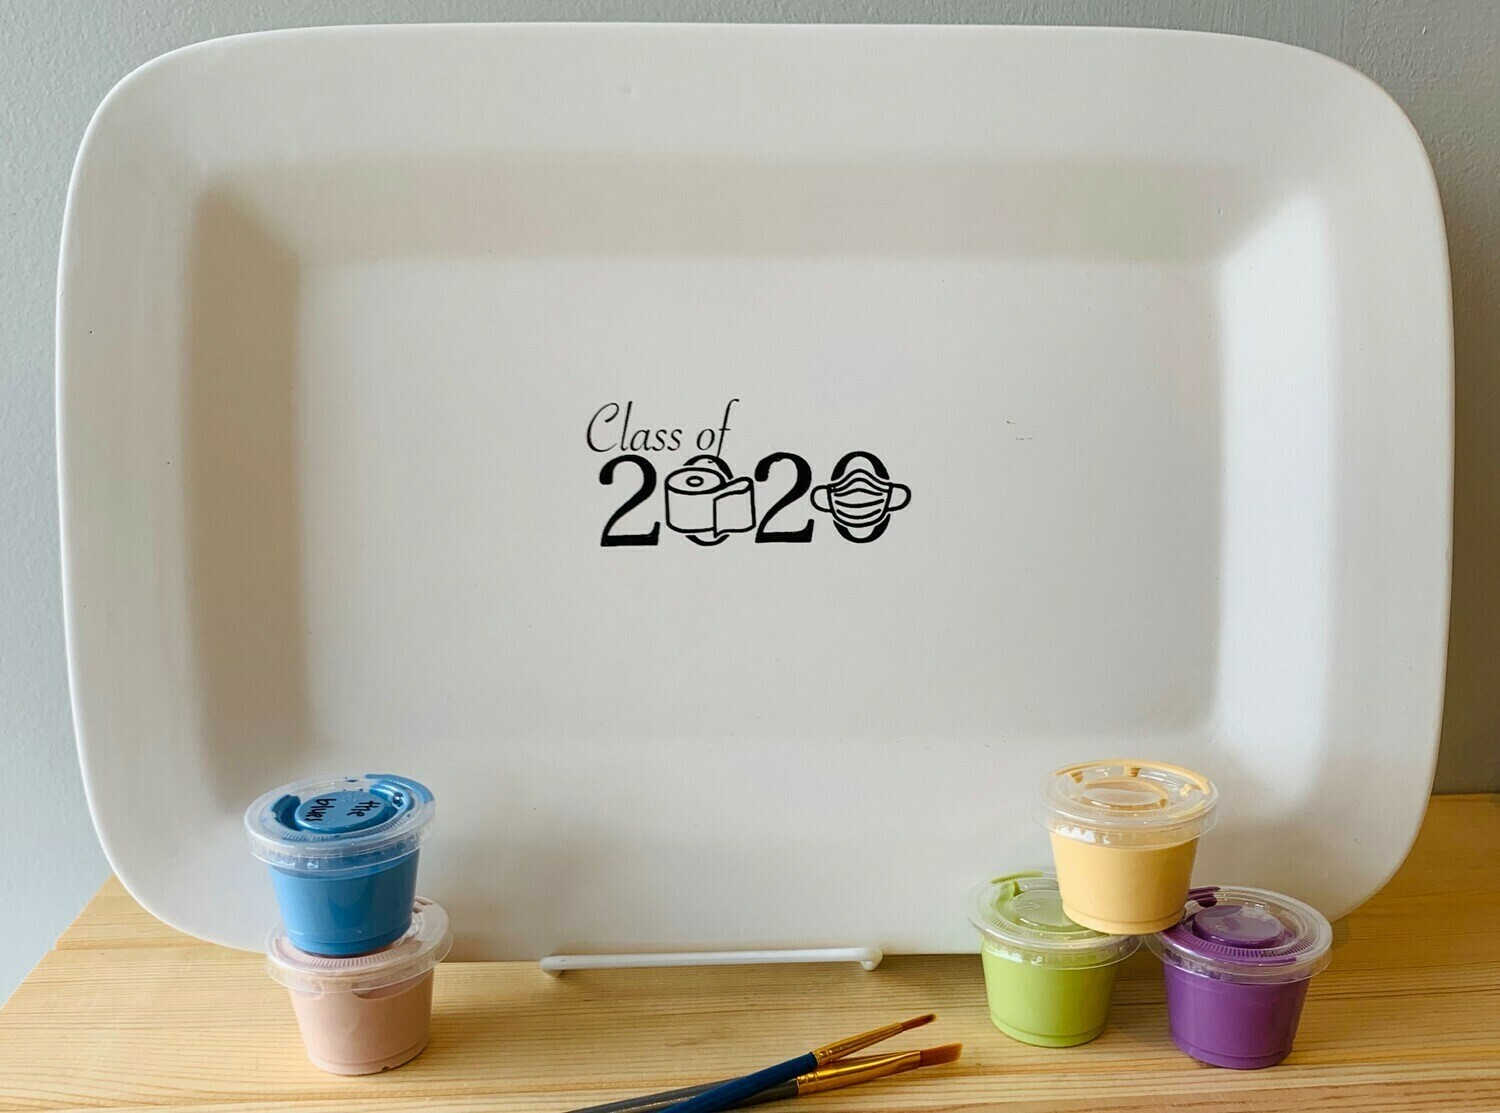 Take Home Coloring Book Class of 2020 Rectangle Rimmed TP Platter with Glazes - Pick up Curbside